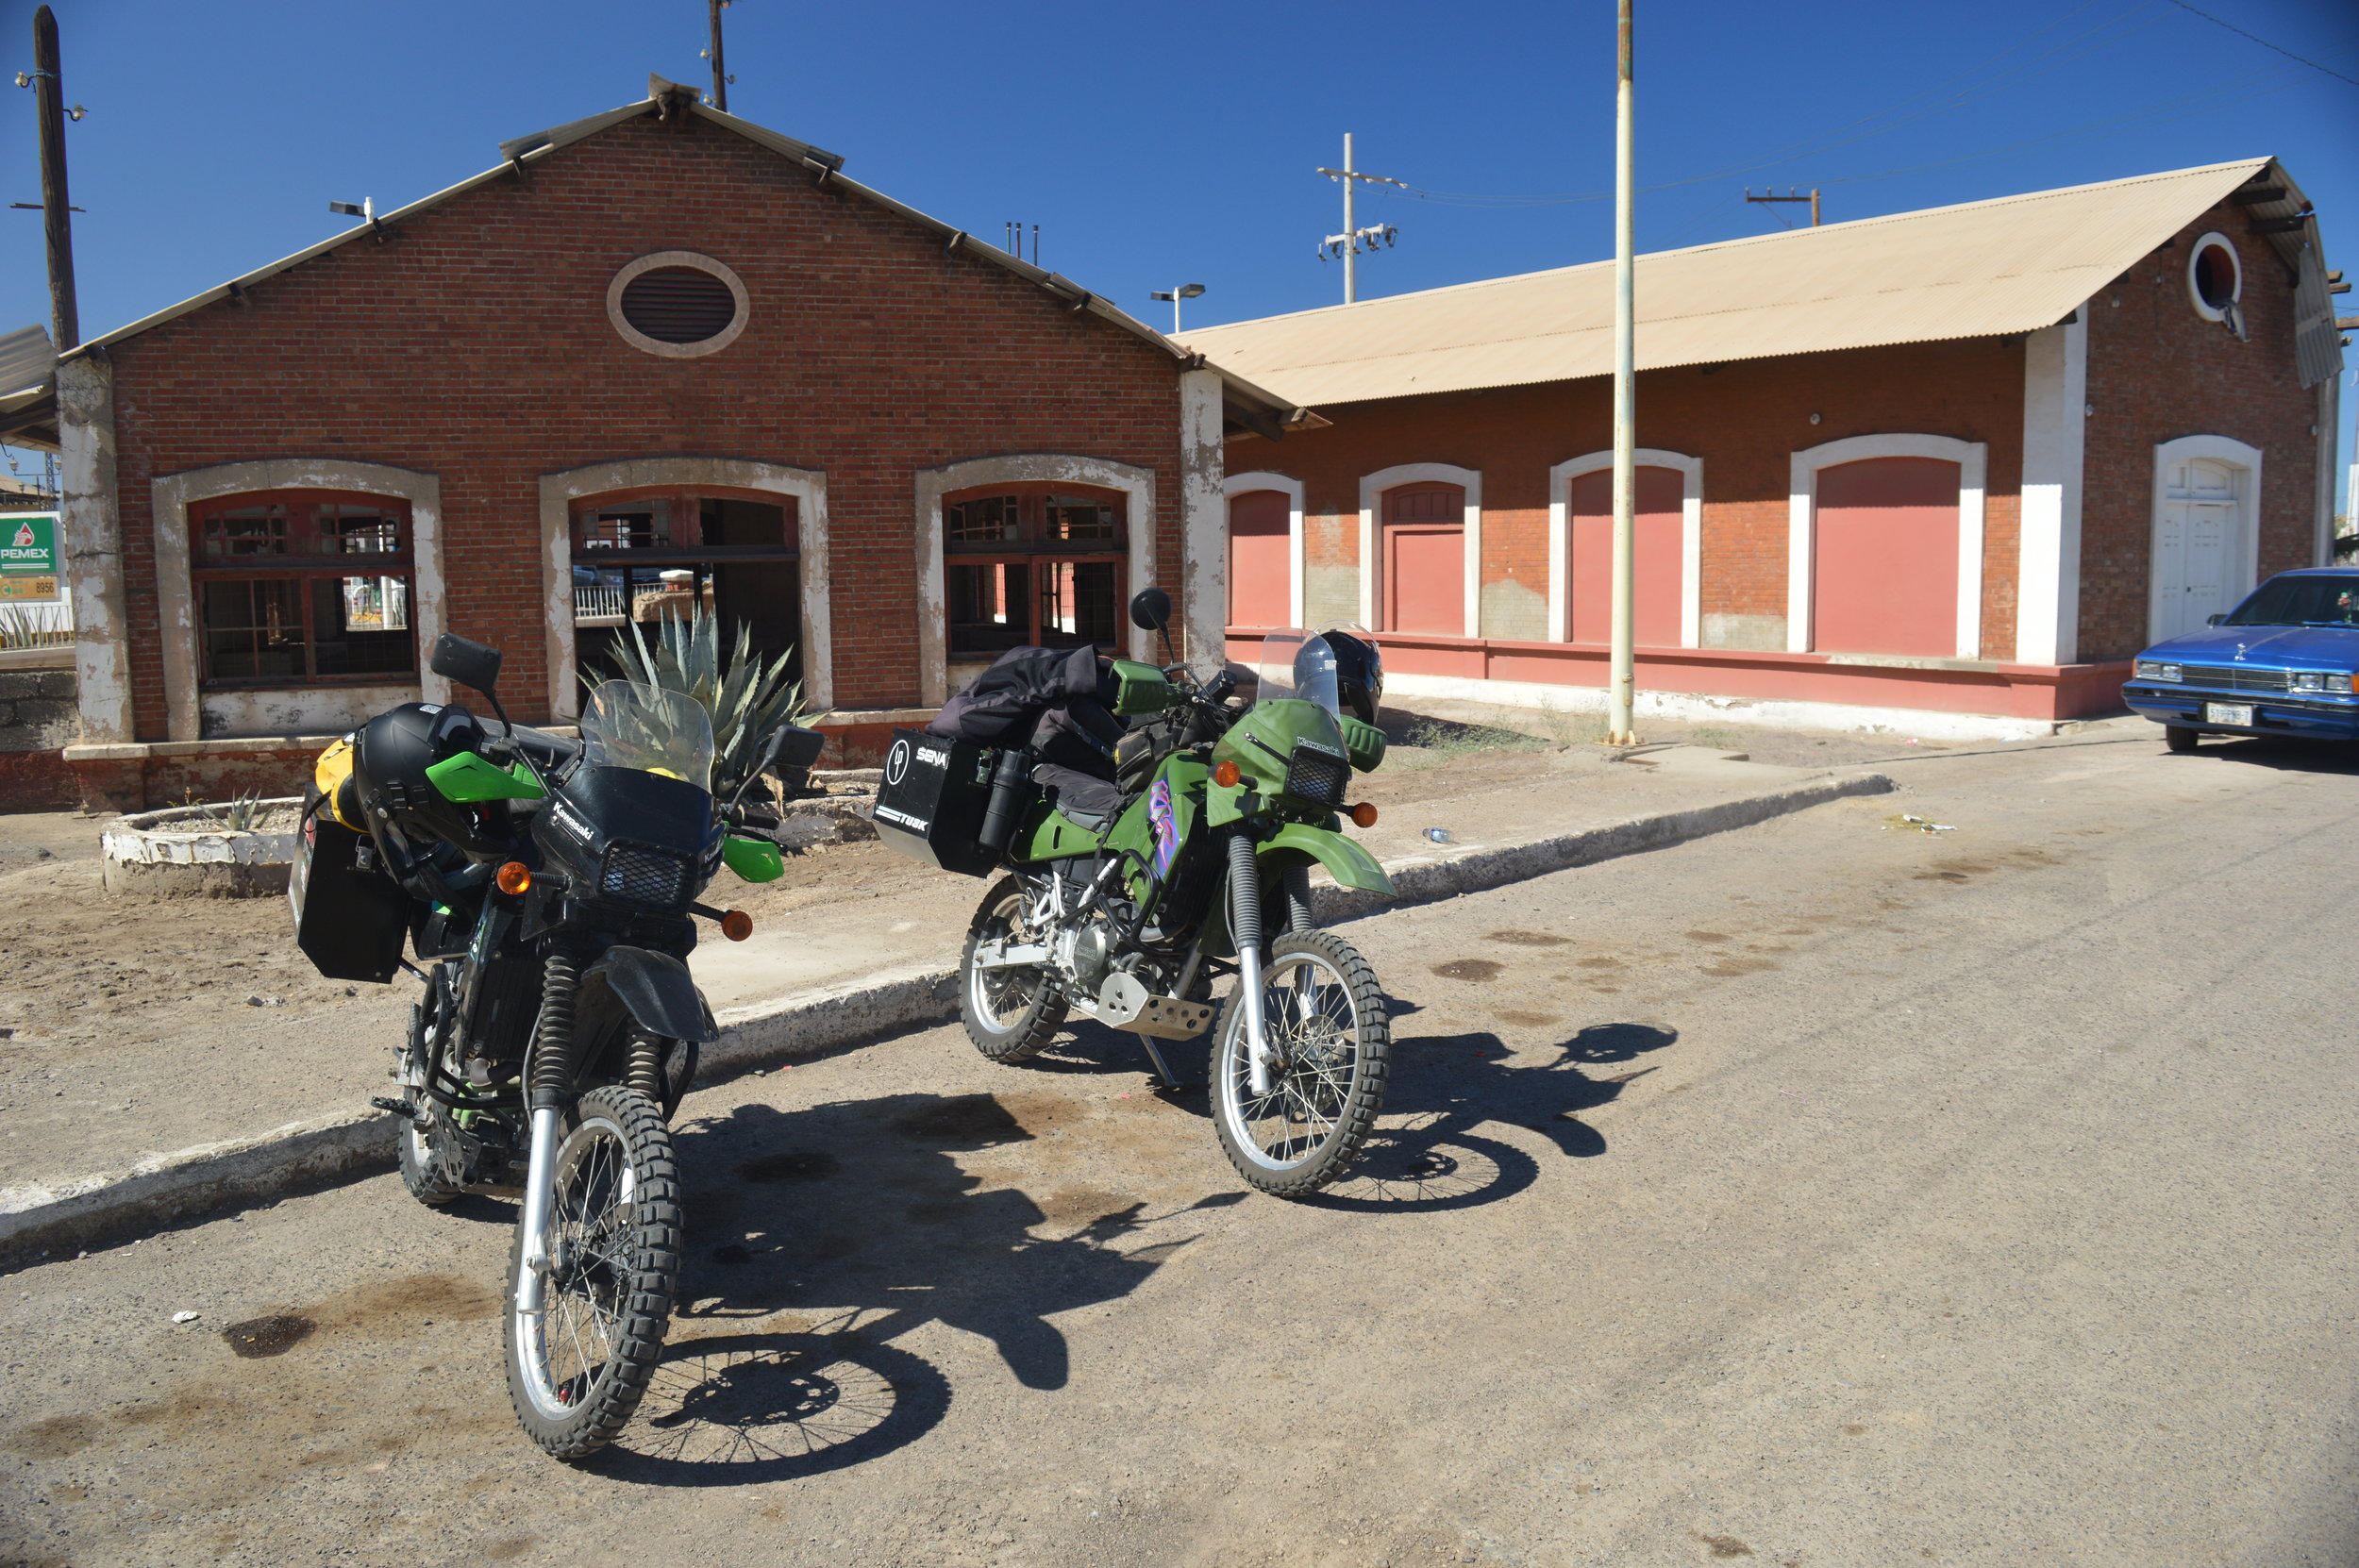 Bikes near the historic El Boleo site in Santa Rosalia.